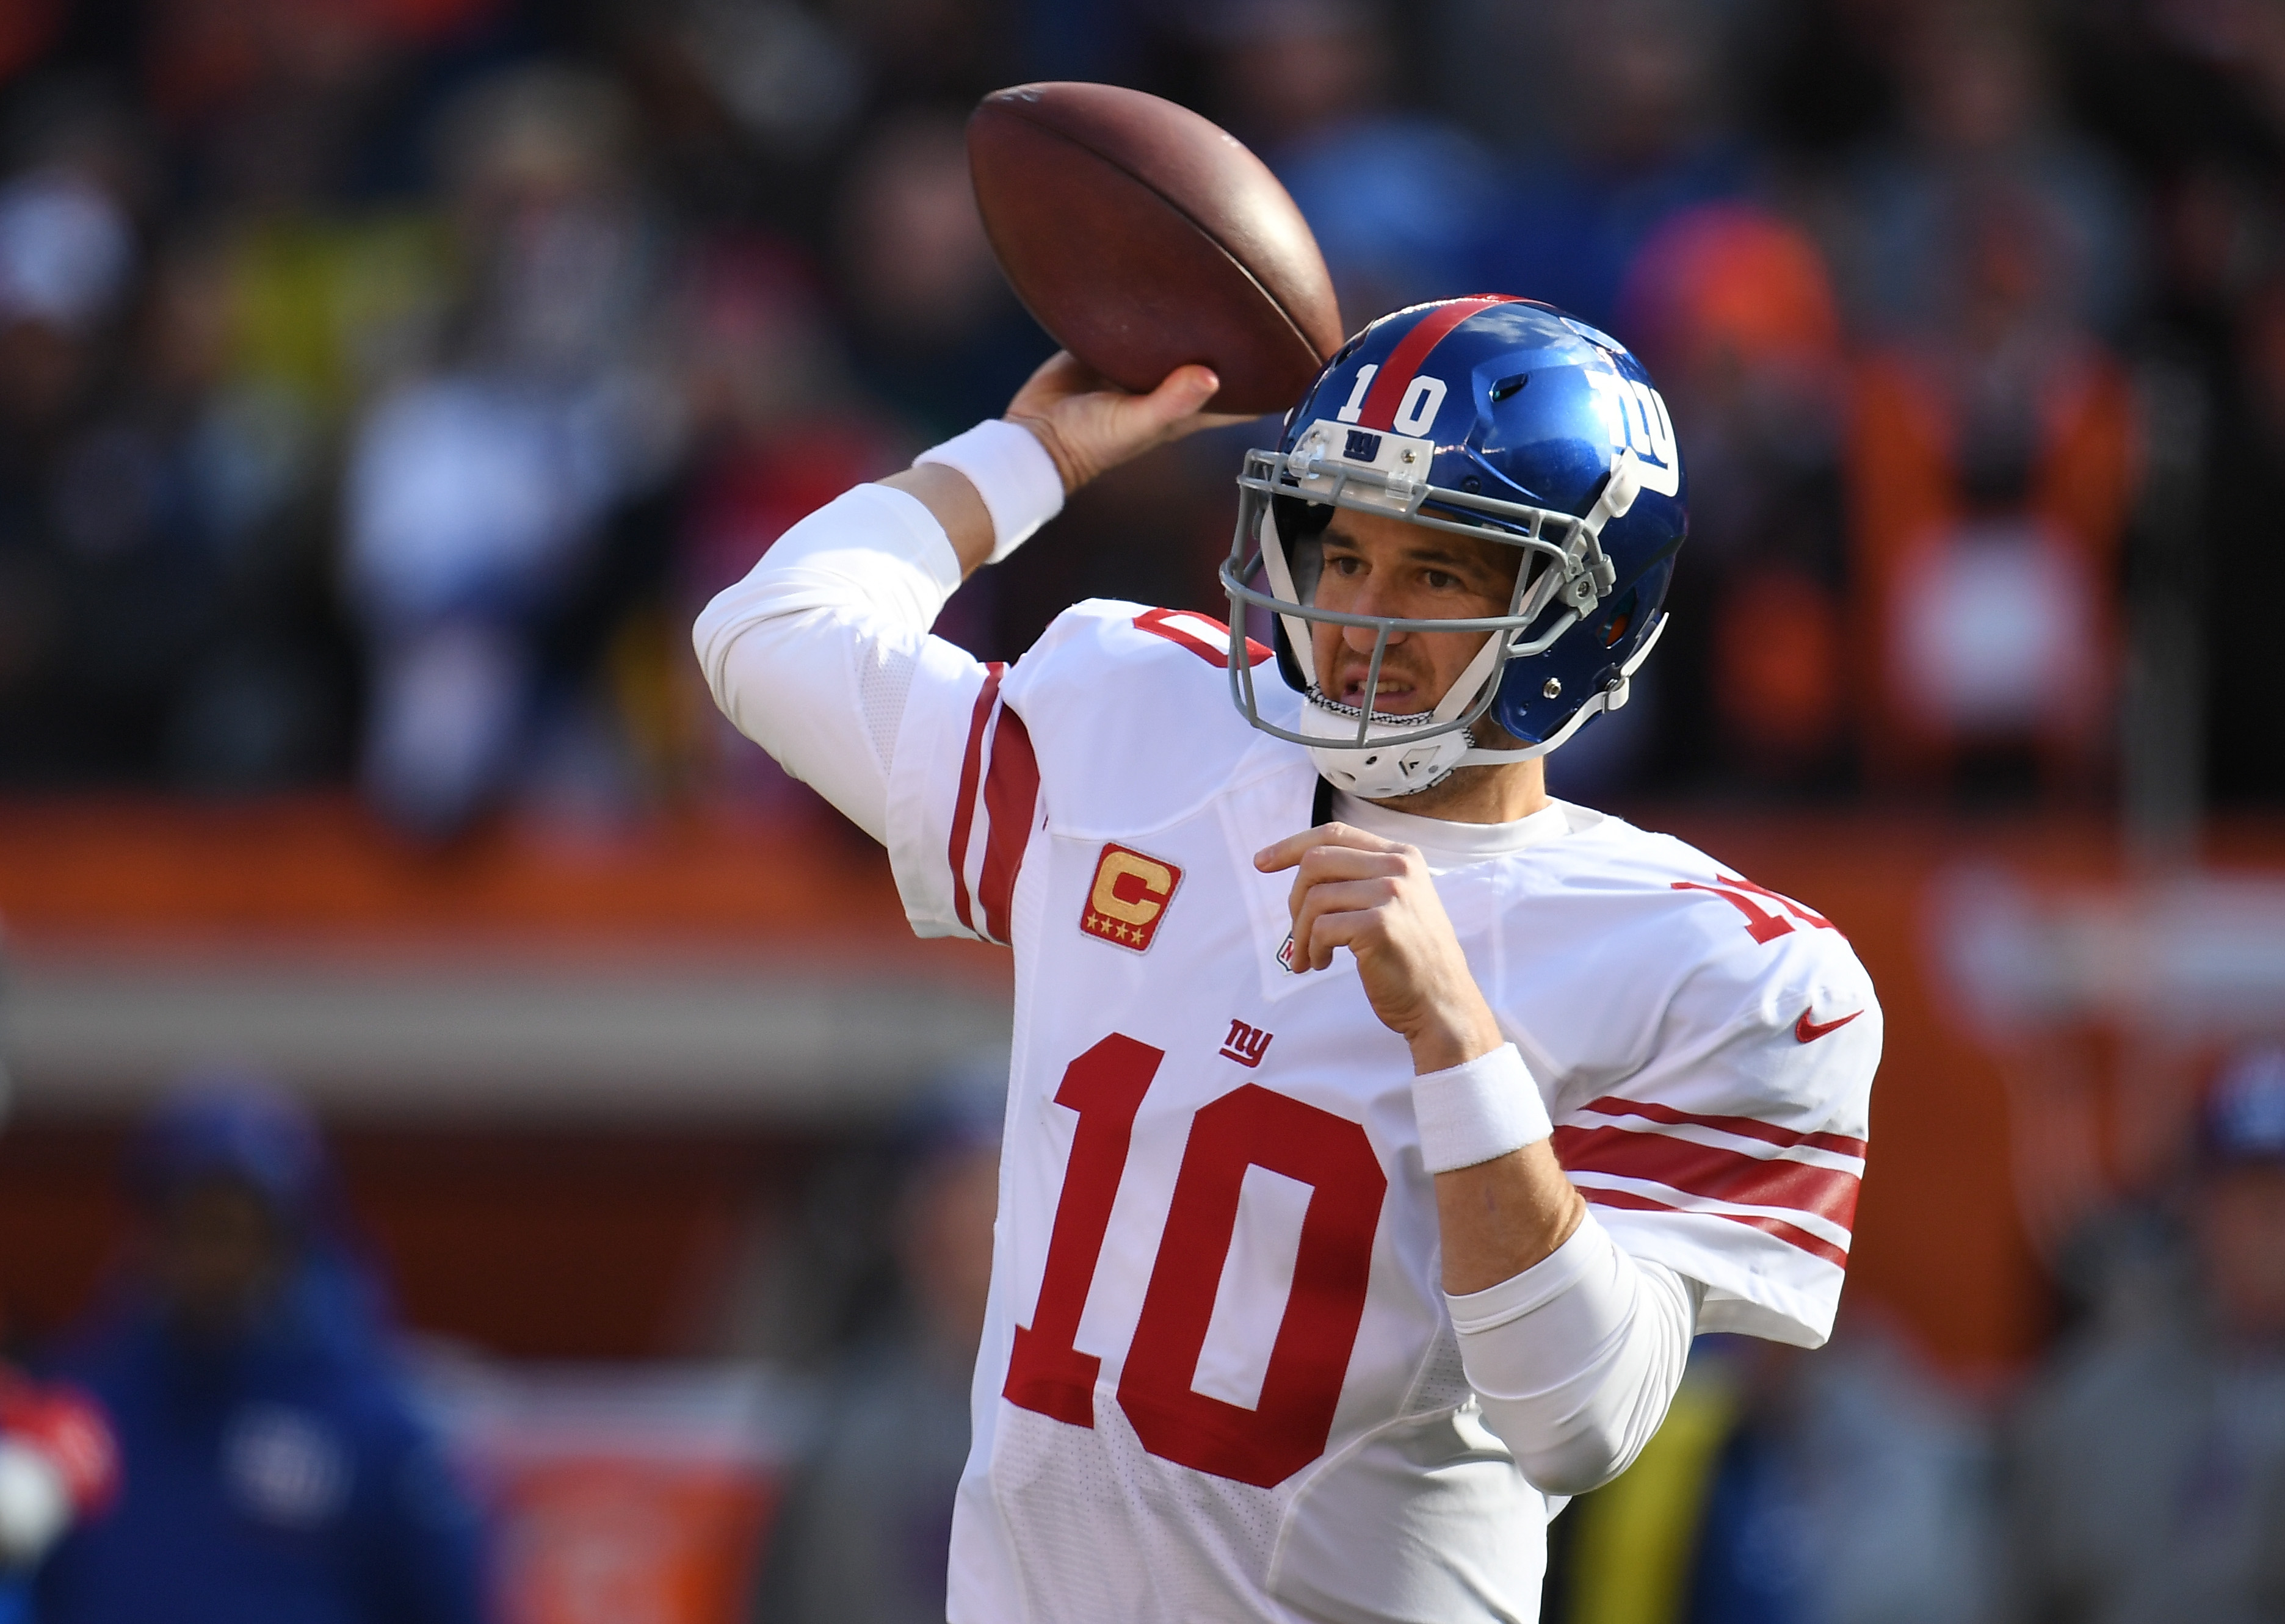 pittsburgh steeelers vs. new york giants, giants steelers point spread, giants steelers odds, steelers giants pick against the spread, over under,steelers giants prediction, latest, vegas line, steelers giants favored, today, point total